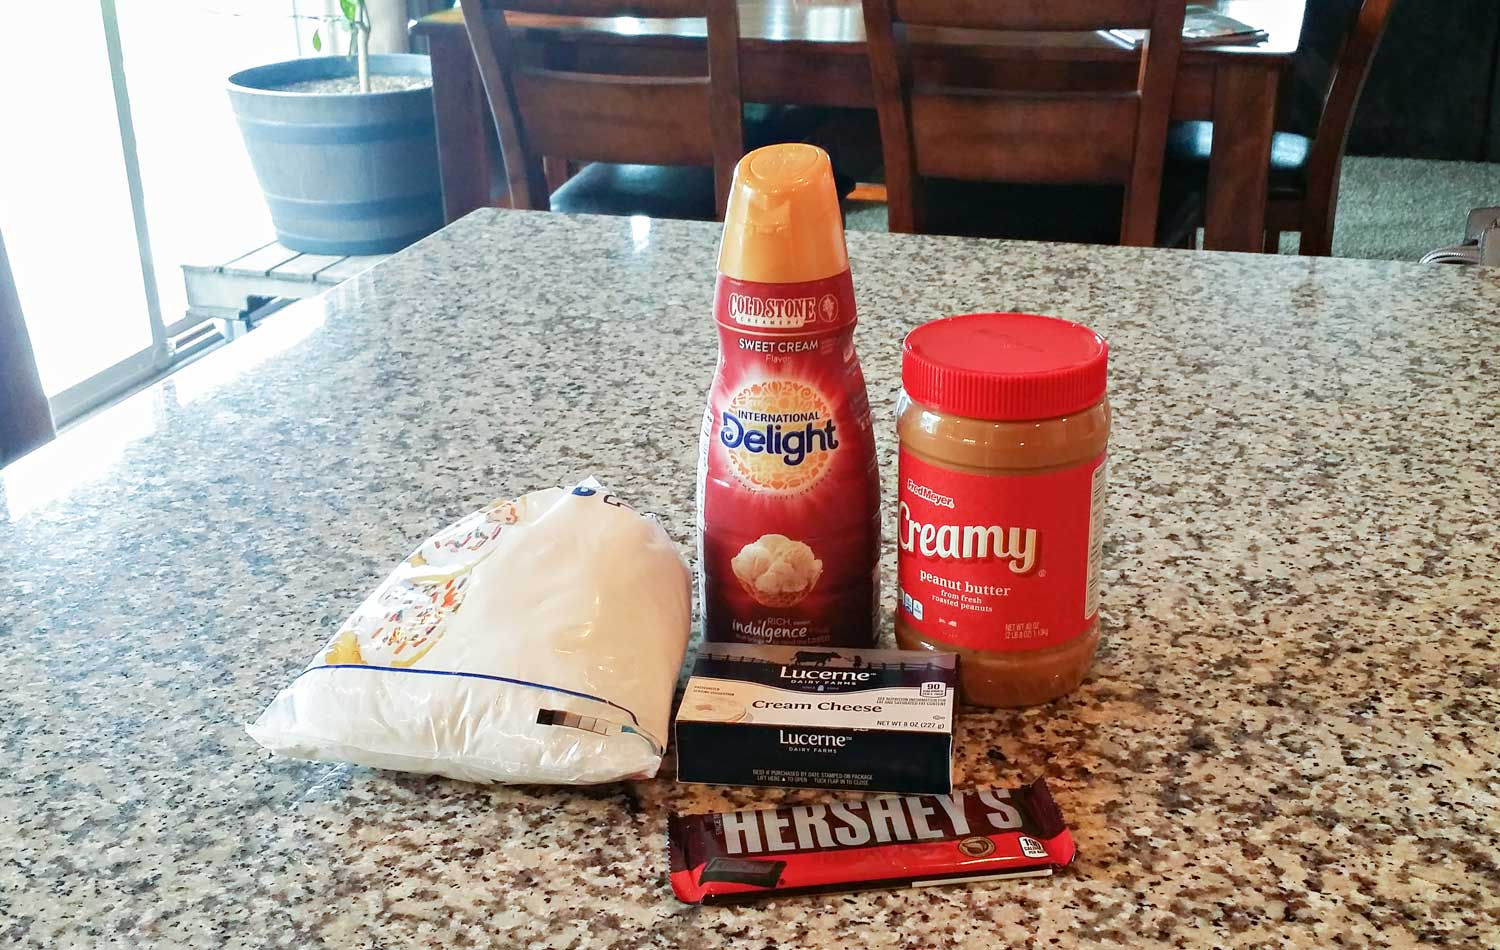 Assemble all your ingredients: peanut butter, cream cheese, confectioners sugar, sweet cream coffee creamer and chopped chocolate pieces.